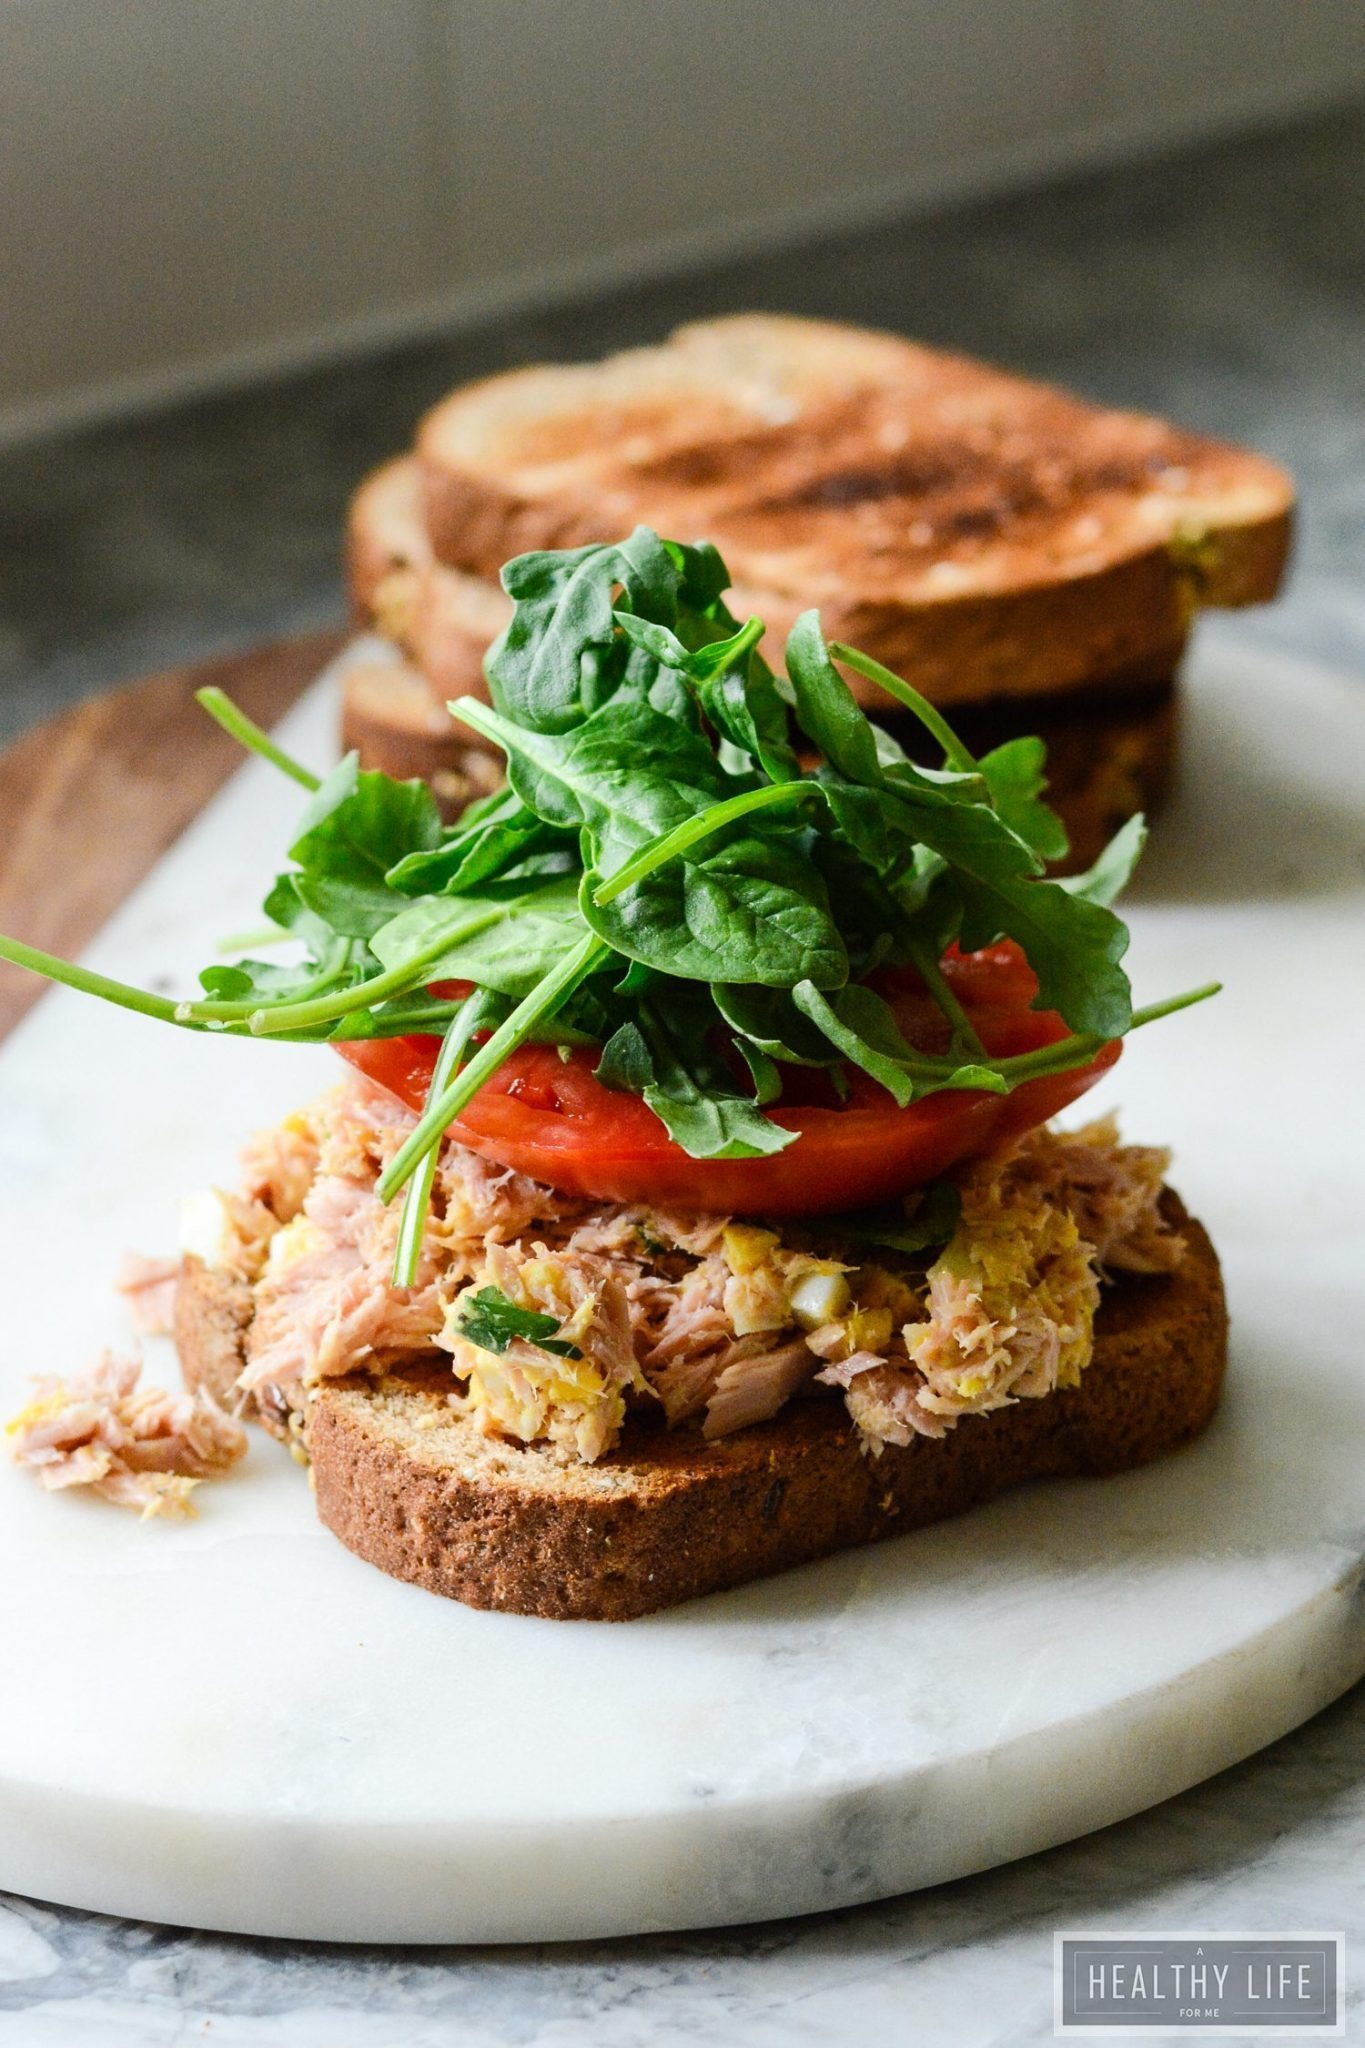 Tuna fish salad sandwich a healthy life for me for Tuna fish salad recipe with egg